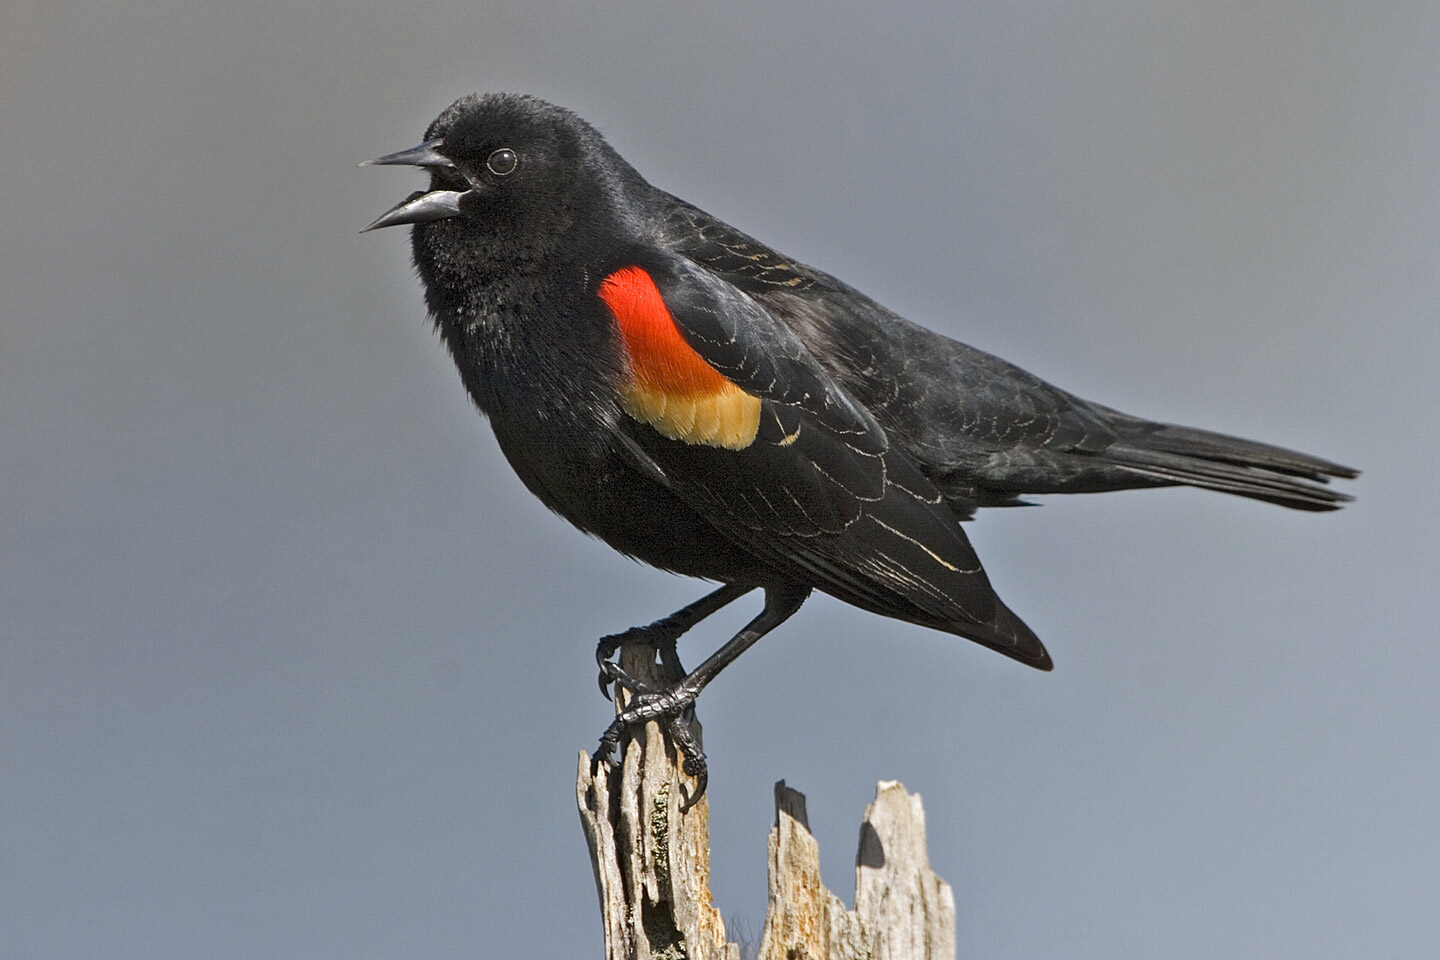 Red Hawaiian Bird a Black Bird With Red And